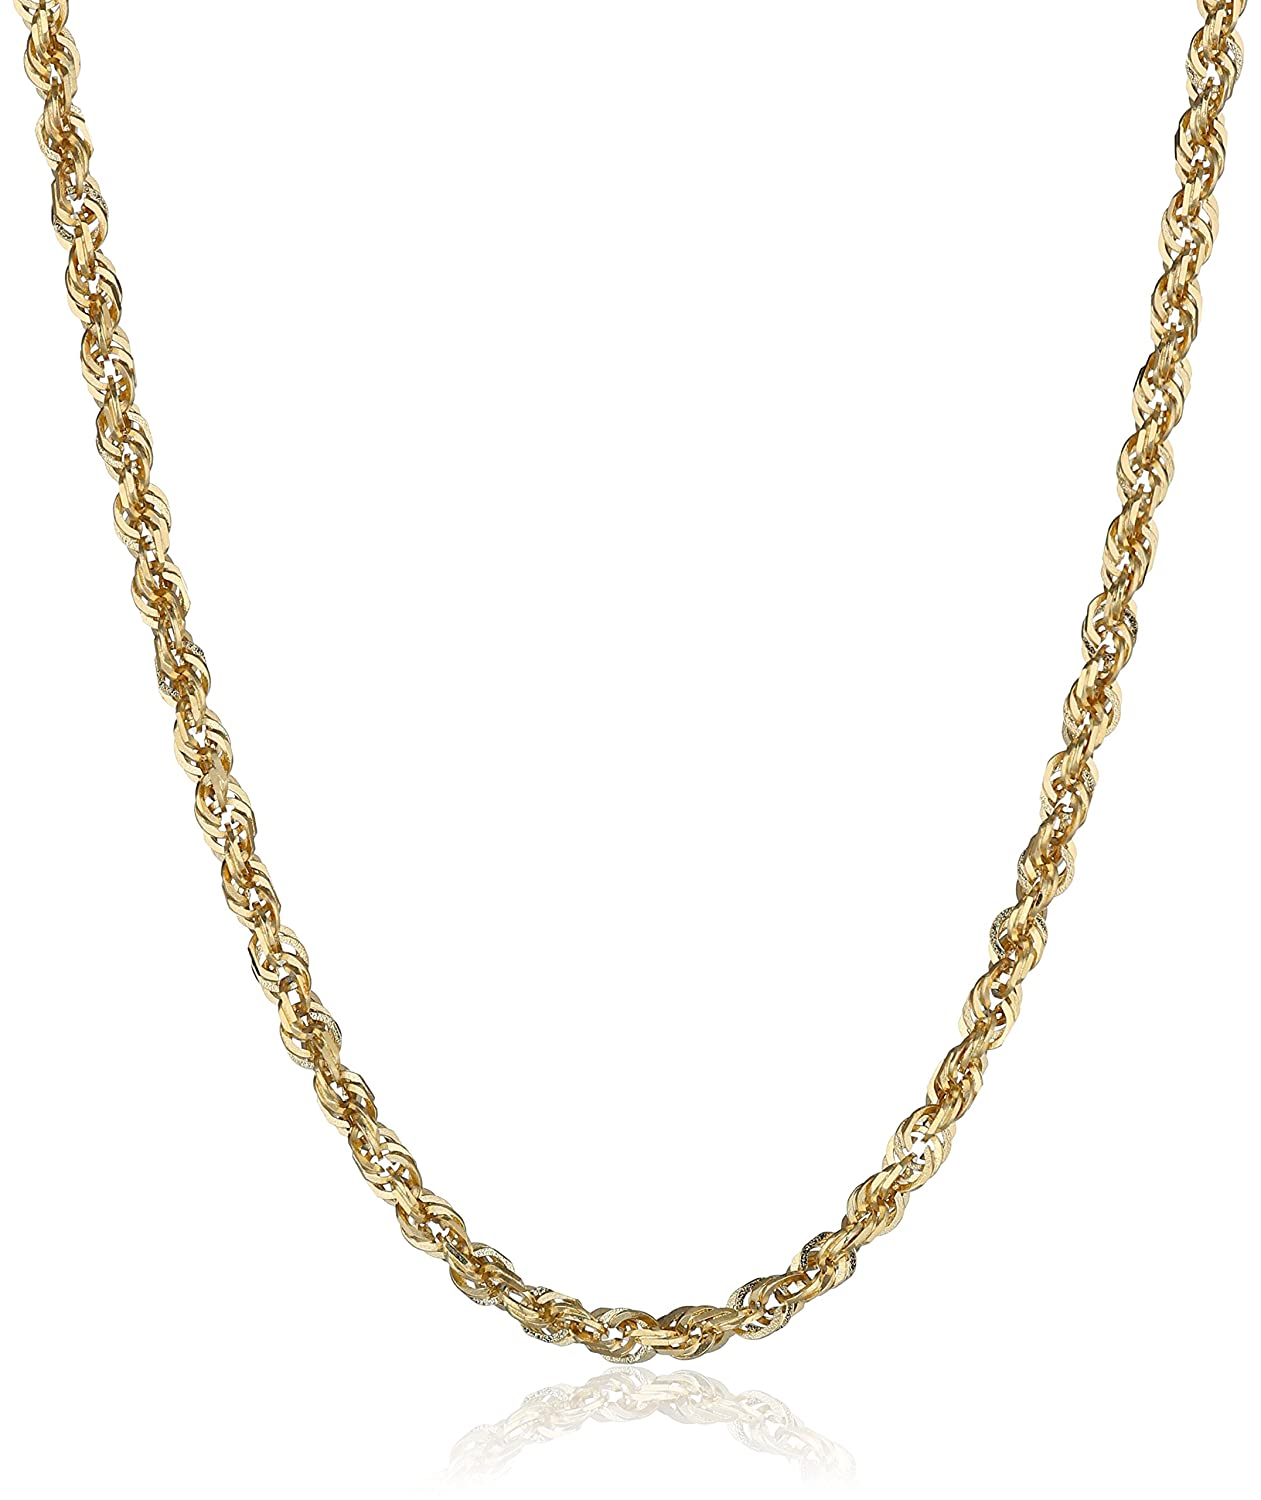 ded9b34a2e57a Duragold Men's 14k Gold Solid Diamond-Cut Rope Chain Necklace (2.5mm)